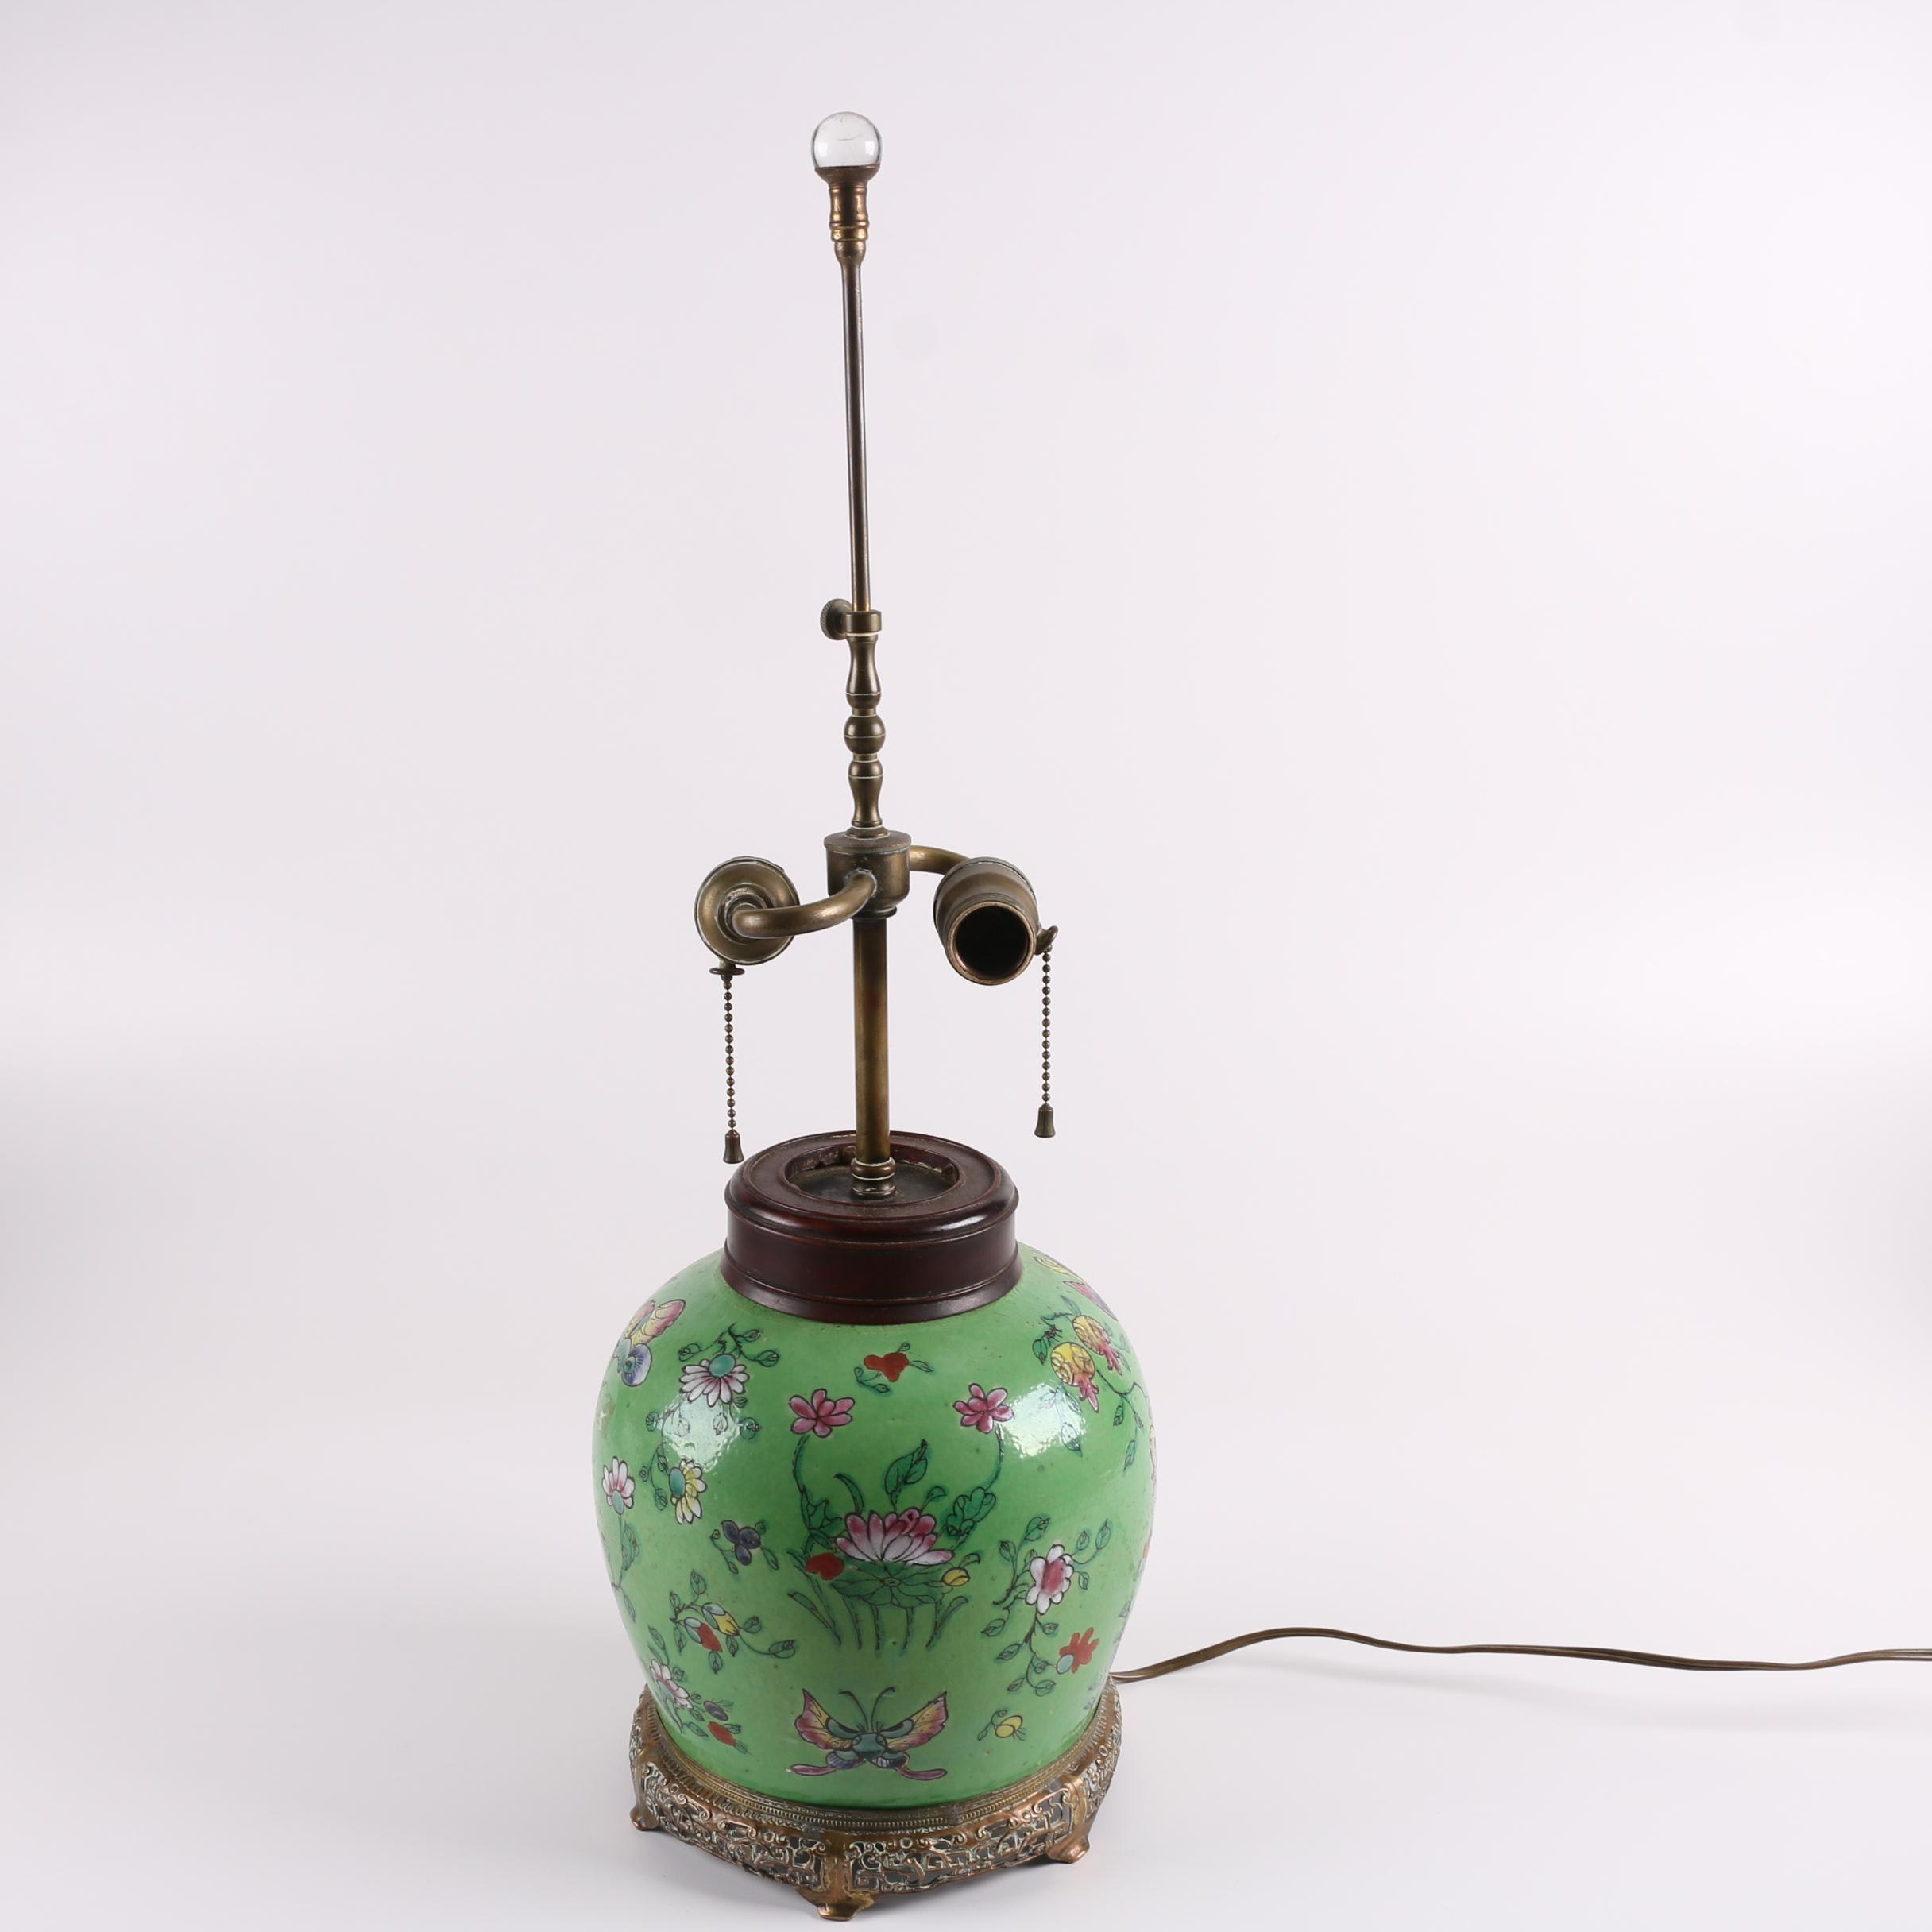 Chinese Famille Verte Style Ceramic Lamp with Reticulated Metal Base